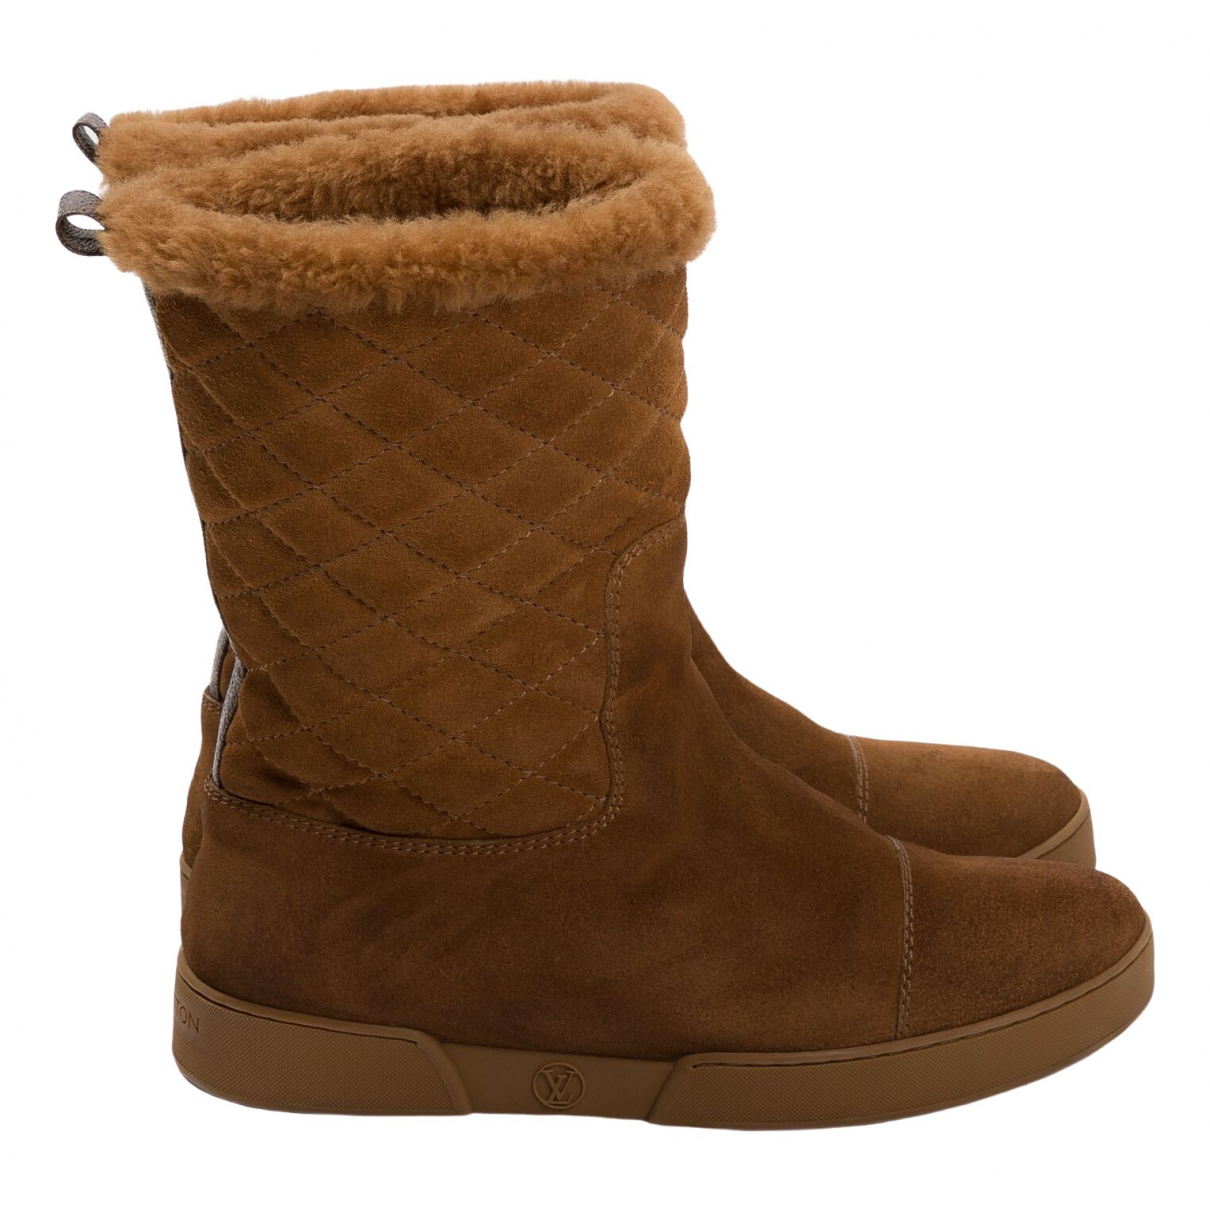 Louis Vuitton \N Brown Suede Ankle boots for Women 37 EU